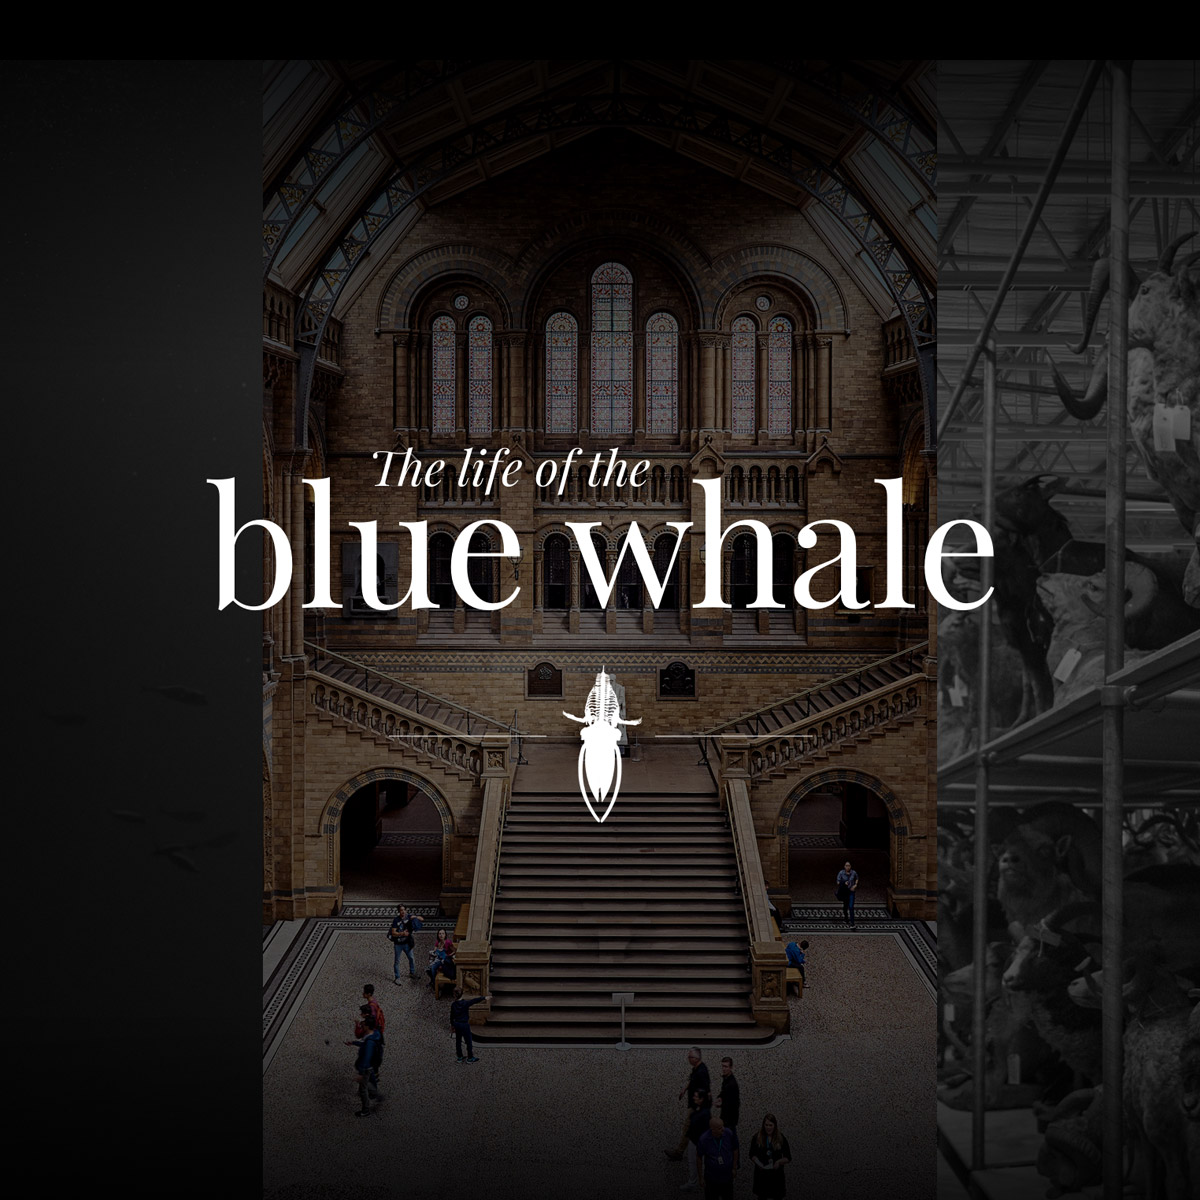 The life of the blue whale